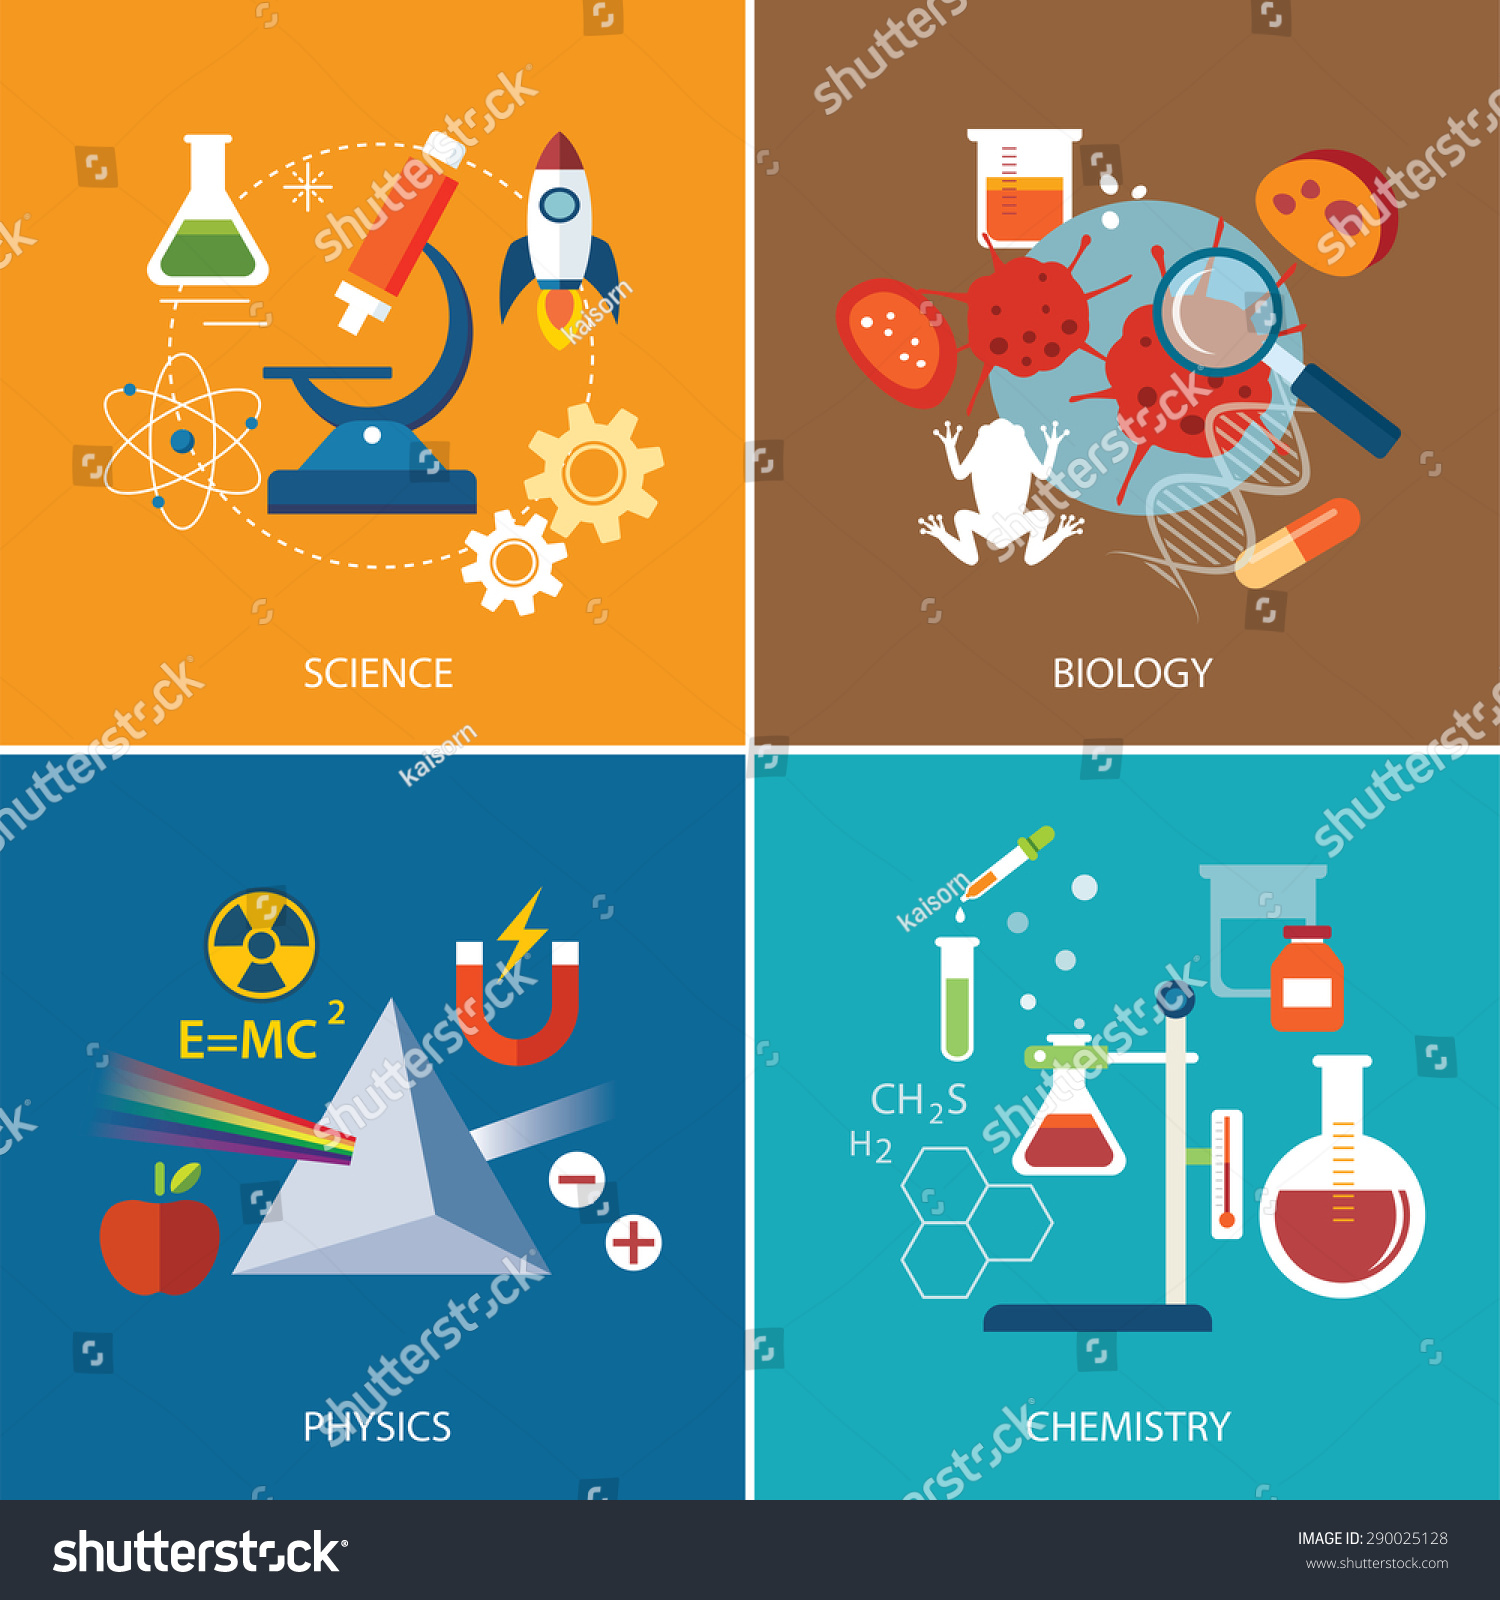 Science Physics From: Science Concept Physics Chemistrybiology Flat Design Stock